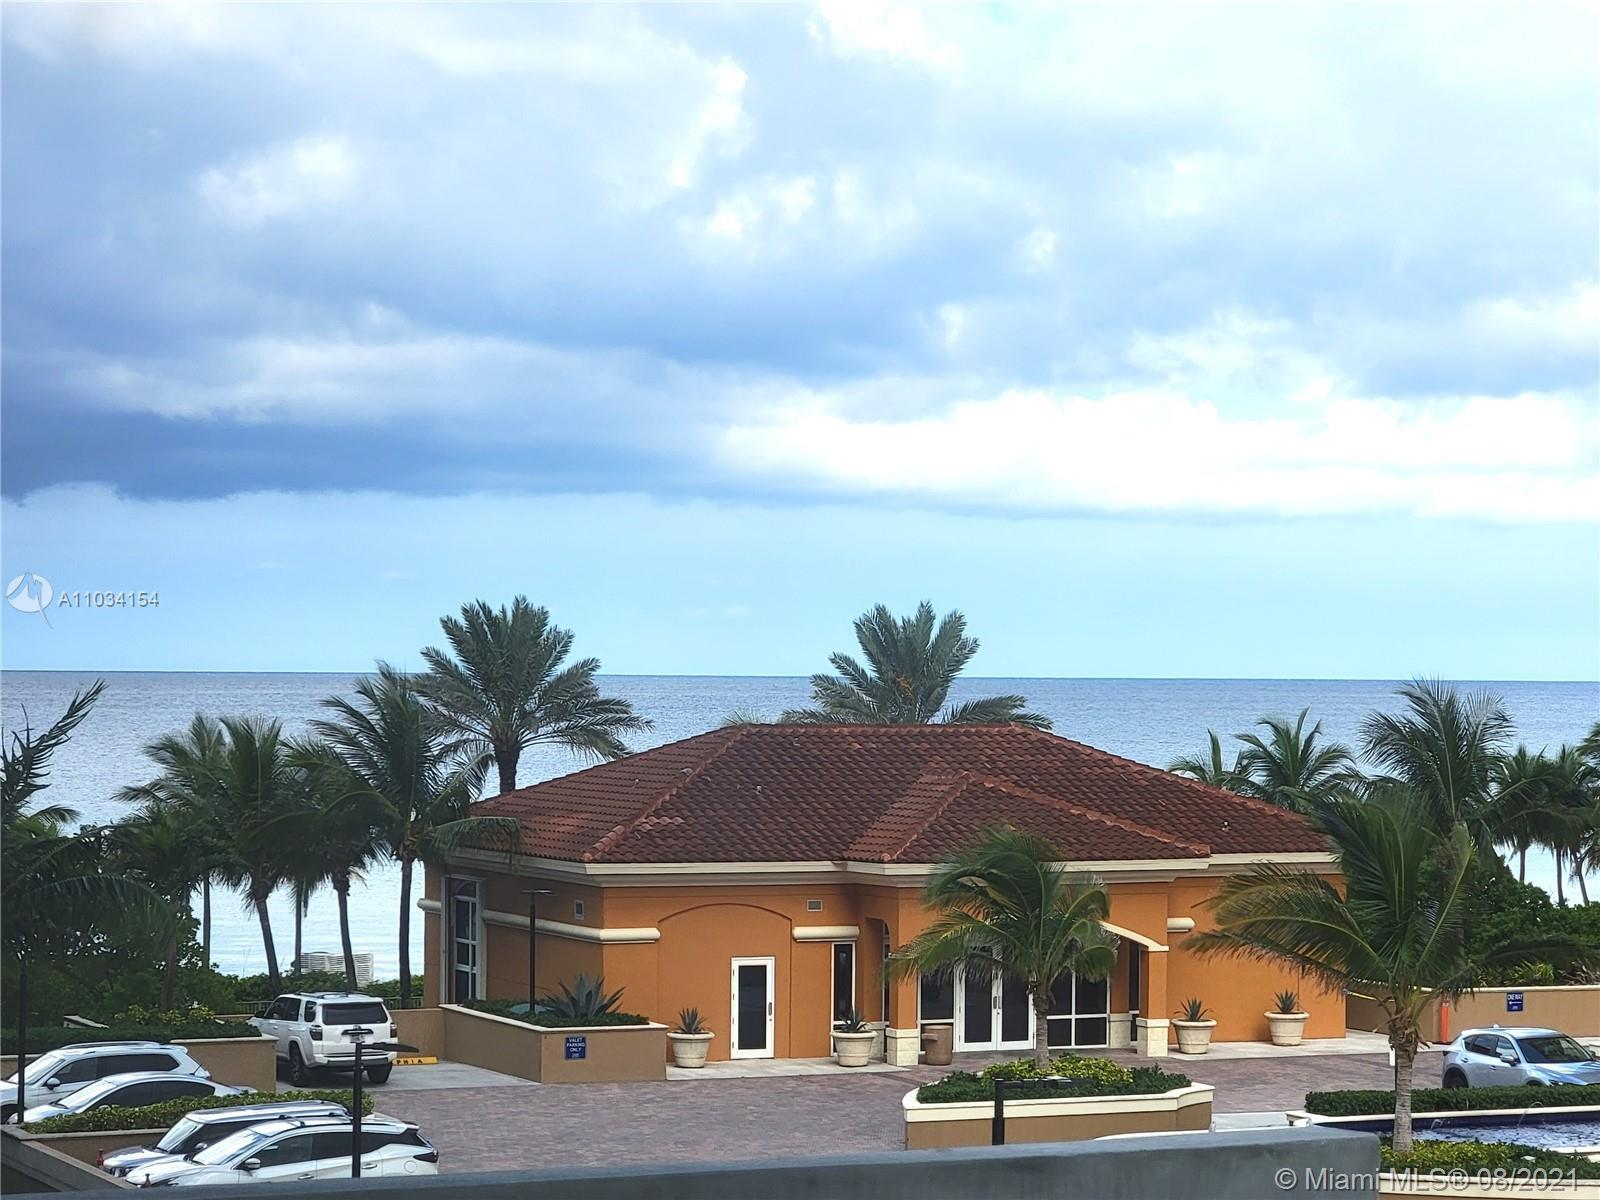 BEST PRICED BEACHFRONT TWO BEDROOM CONDO WITH  PARTIAL OCEAN VIEWS, LARGE OPEN SOUTHEAST BALCONY.